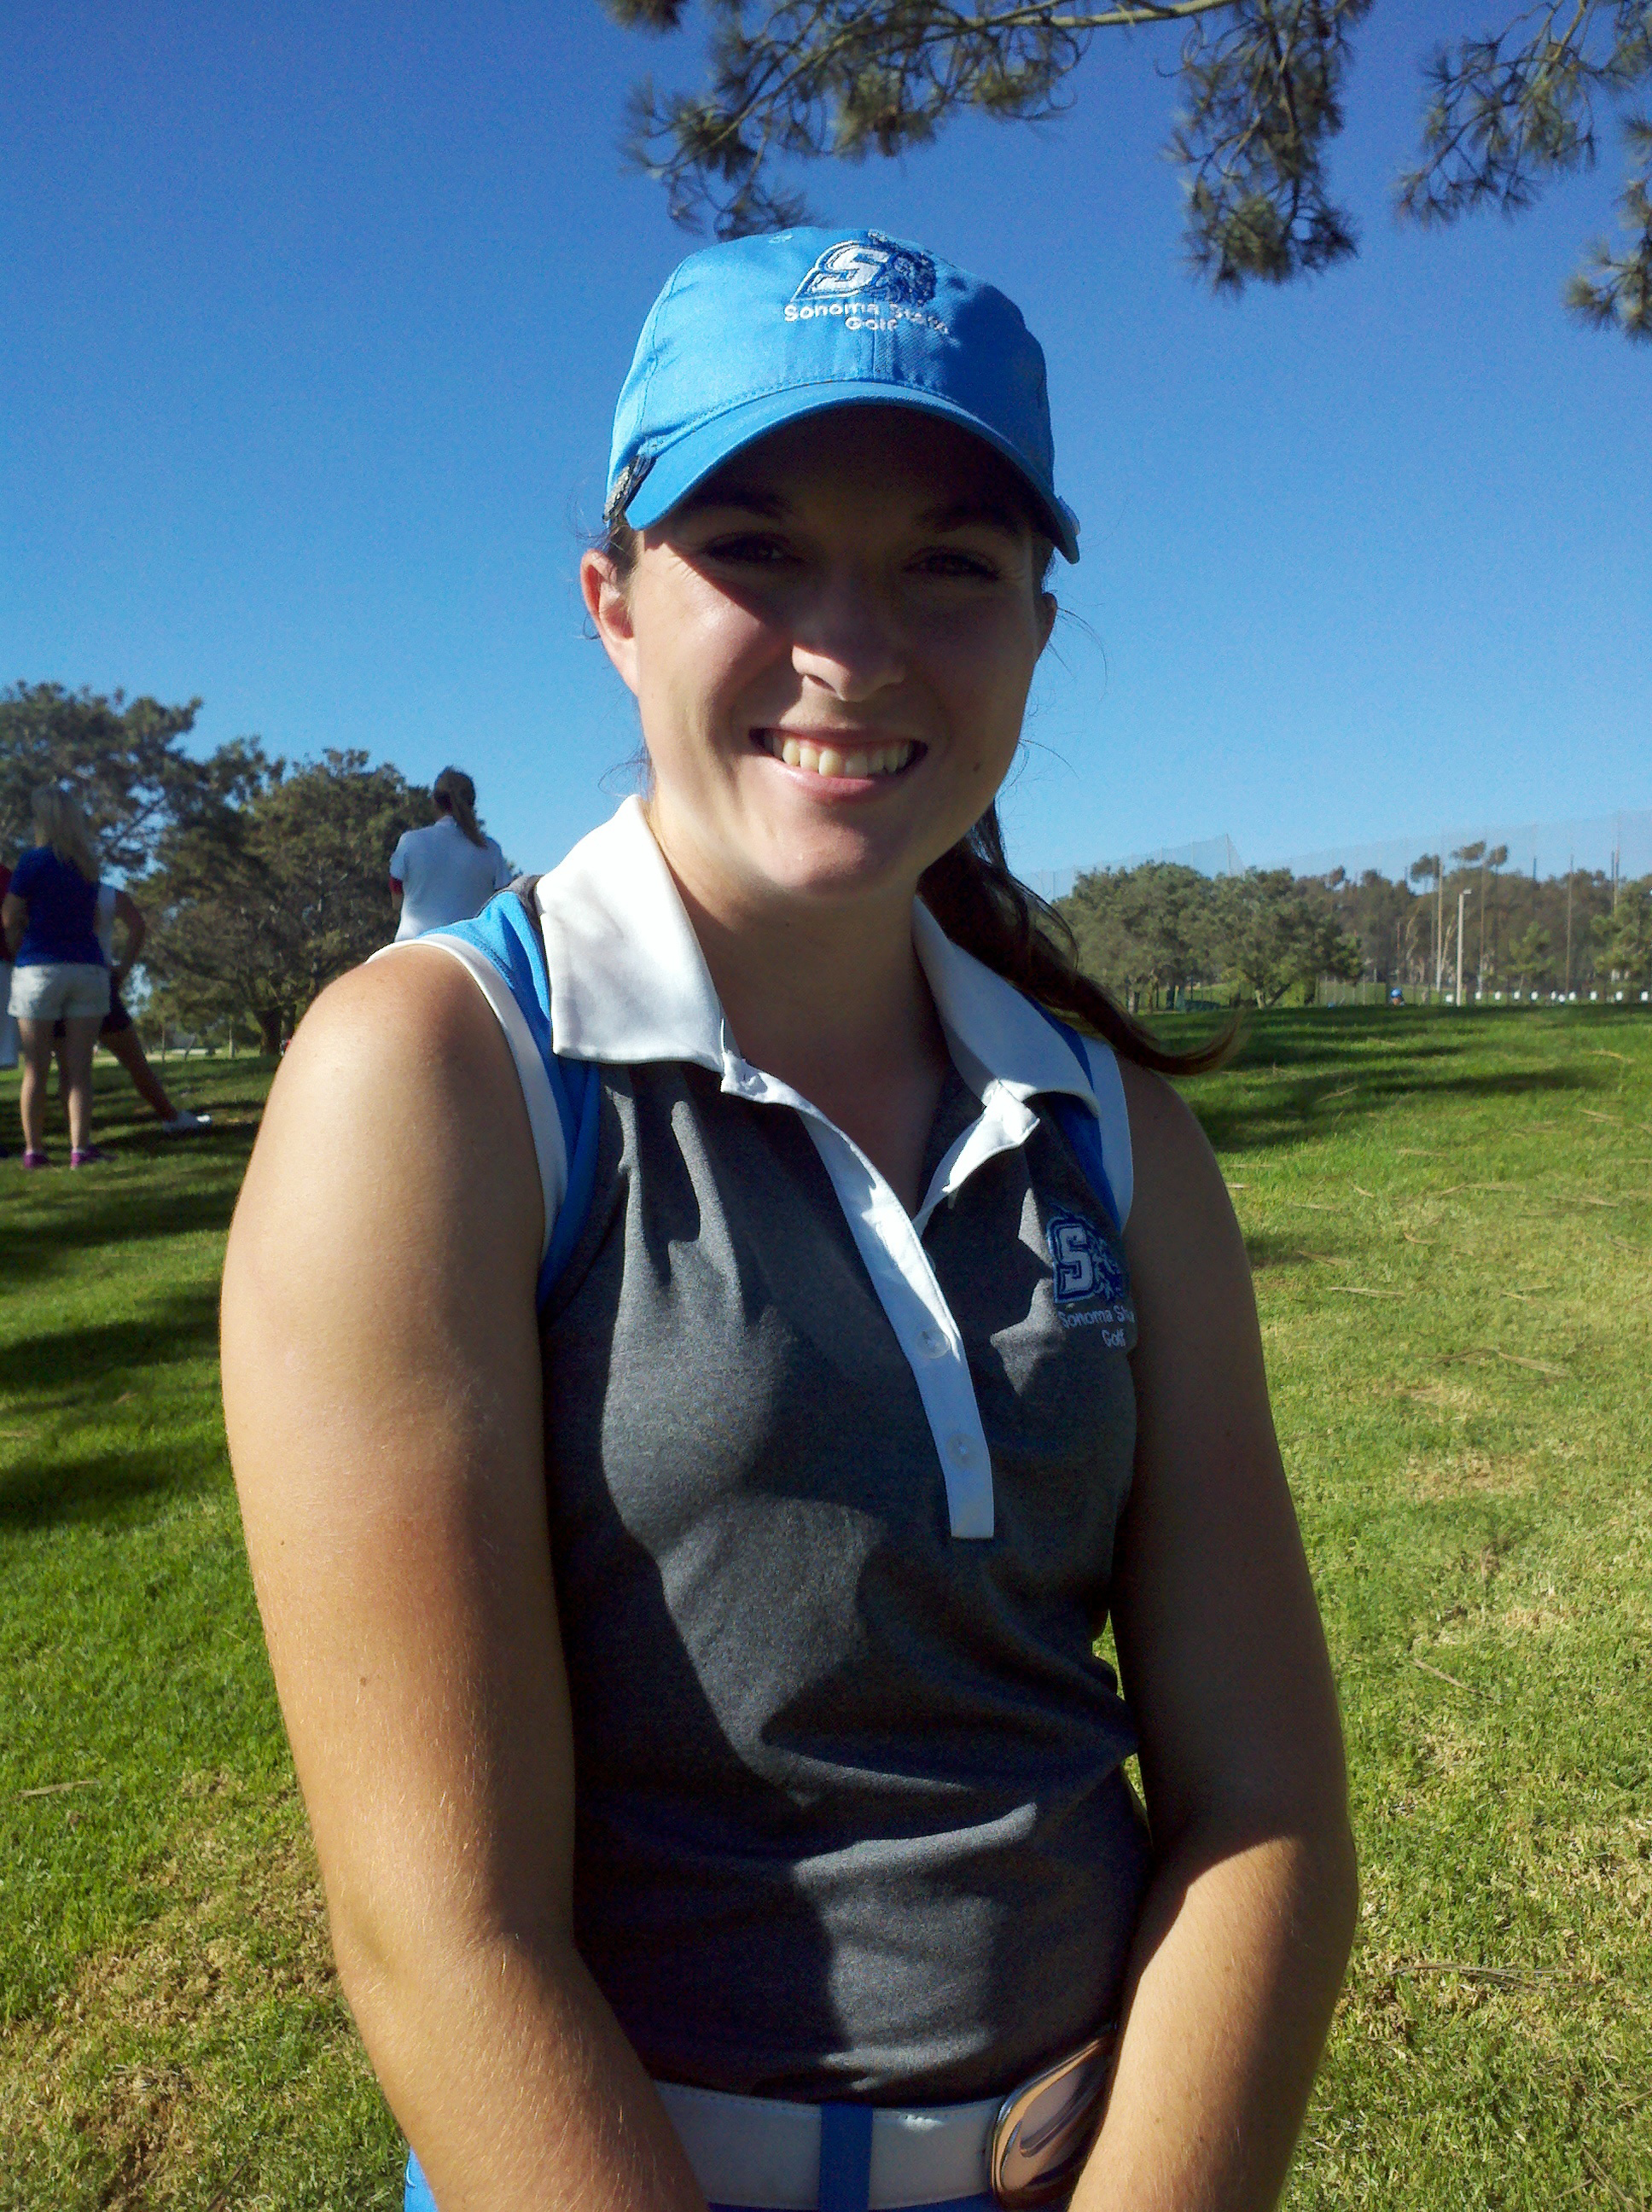 COURTESY // Haley Whitbeck    Haley Whitbeck was chosen as one of last week's players of the week.